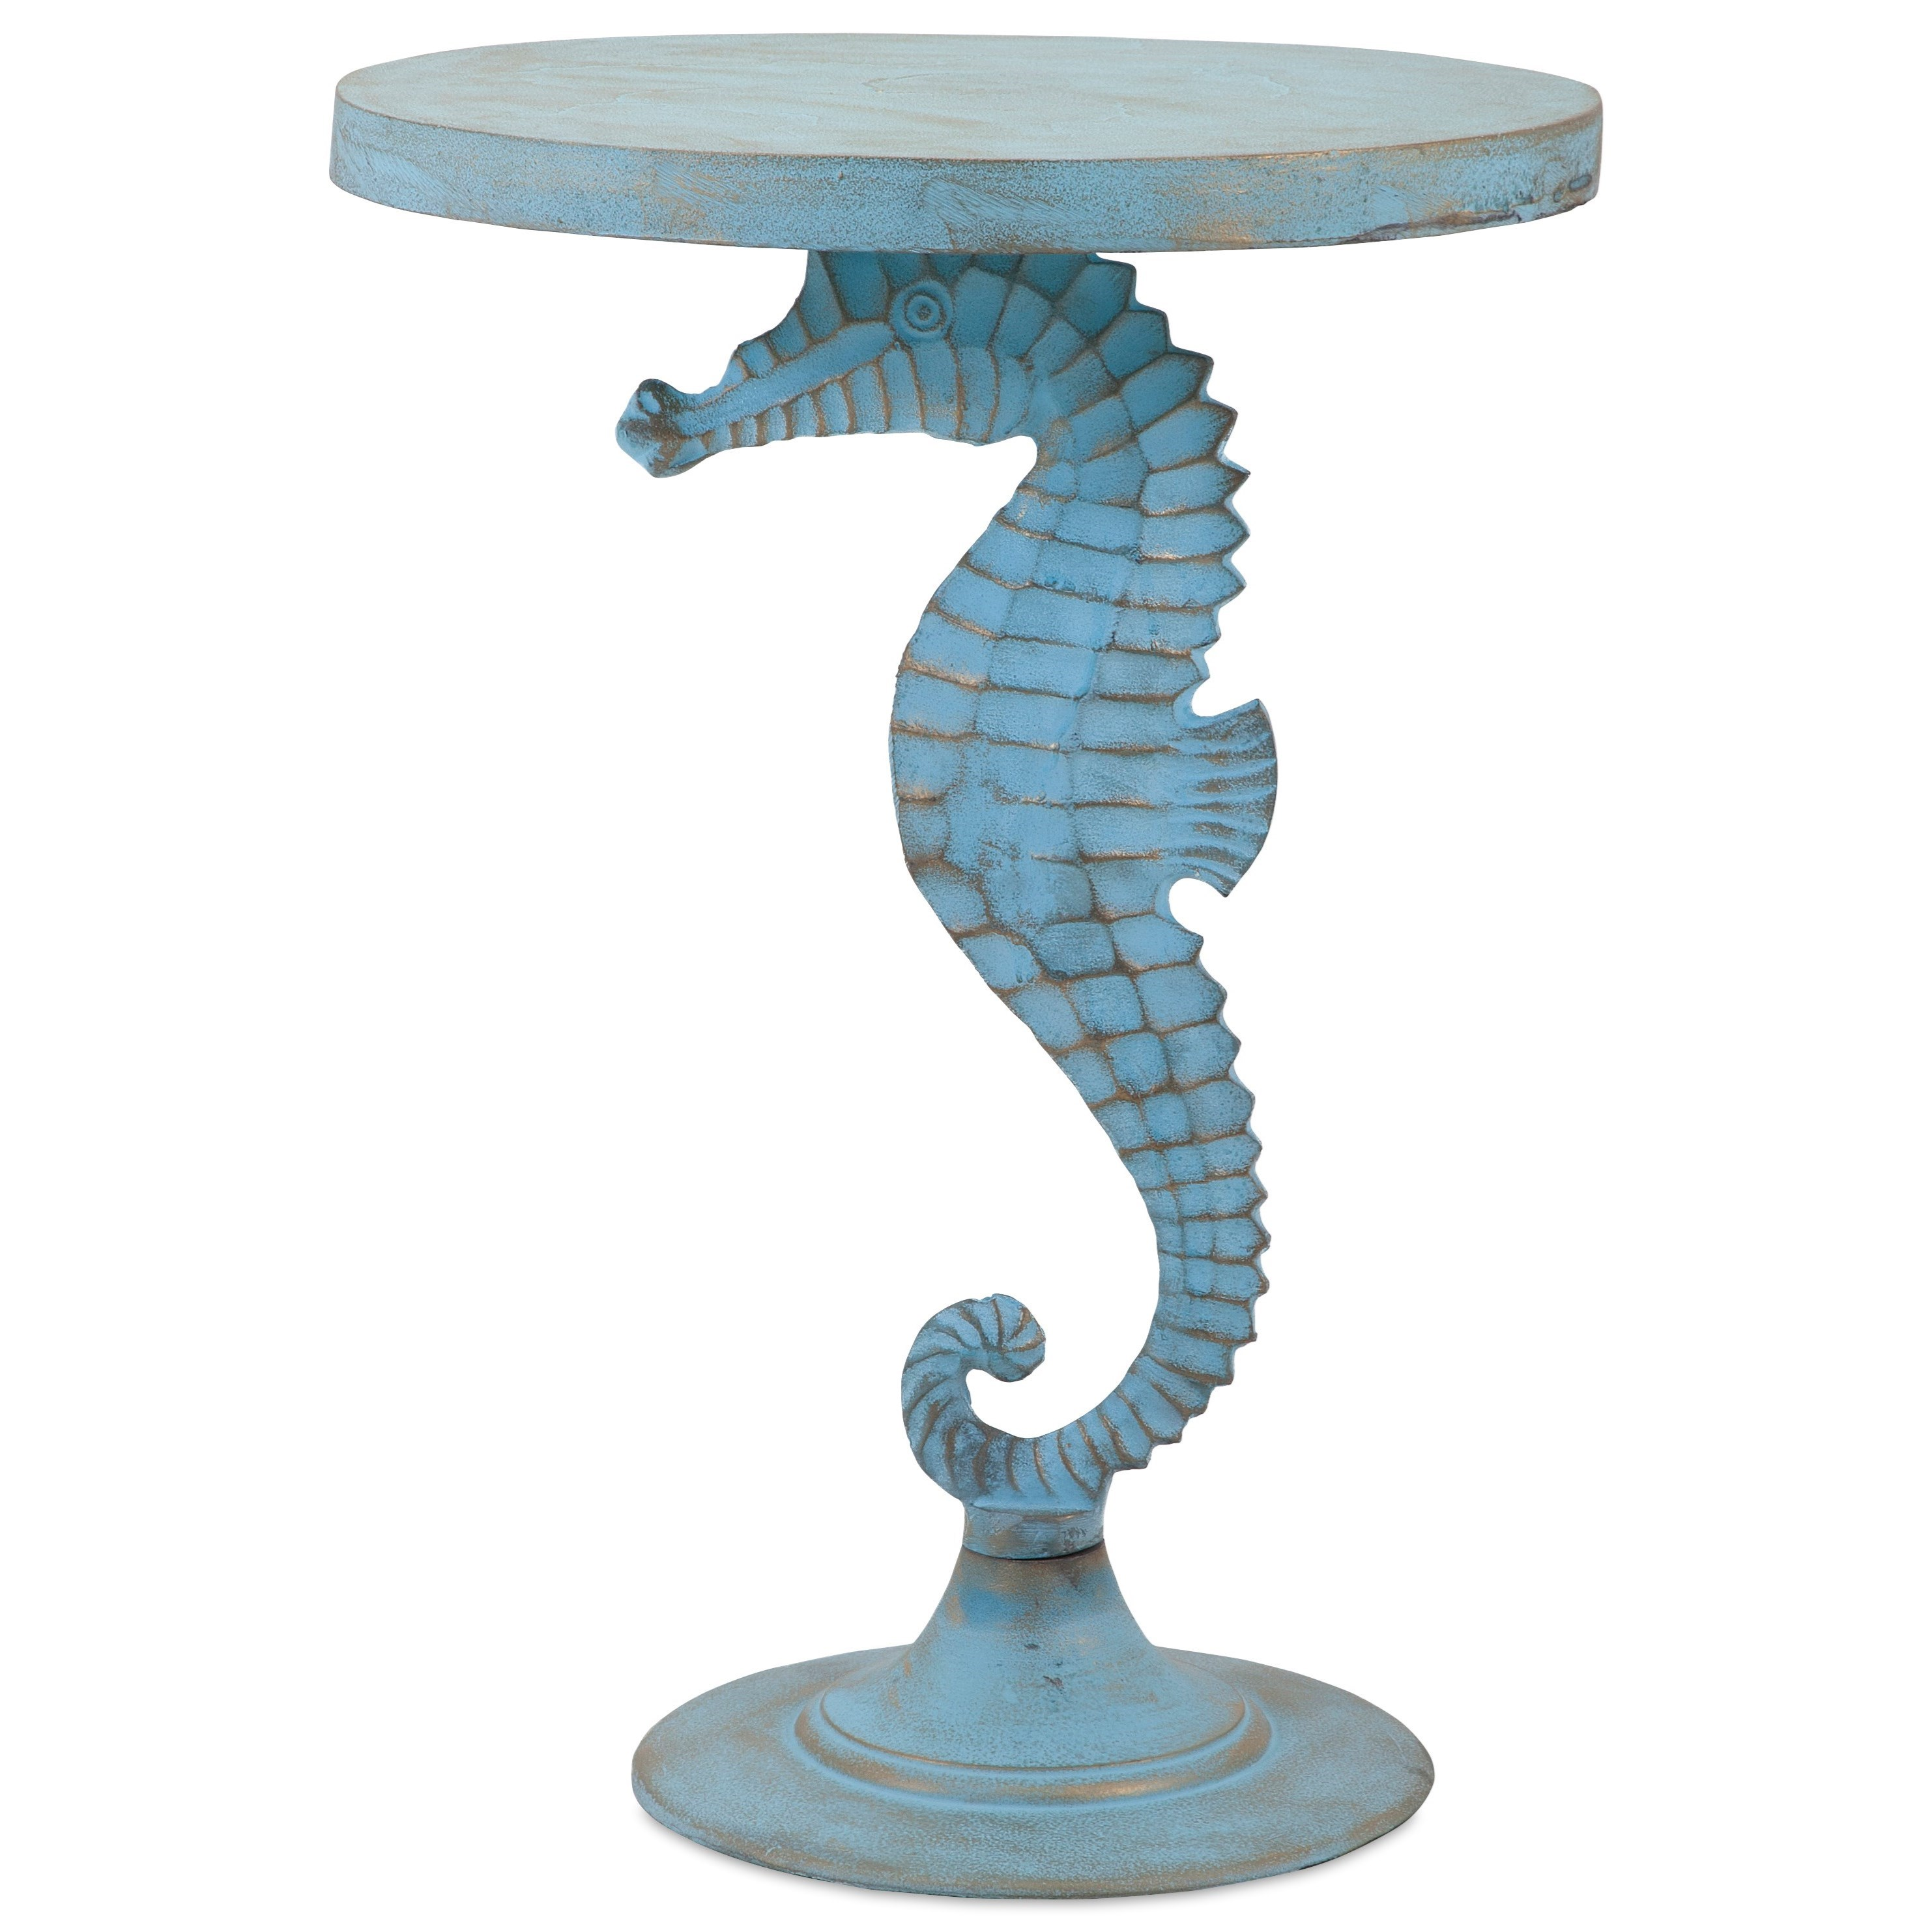 Accent Tables and Cabinets Windsor Sea Horse Table by IMAX Worldwide Home at Alison Craig Home Furnishings